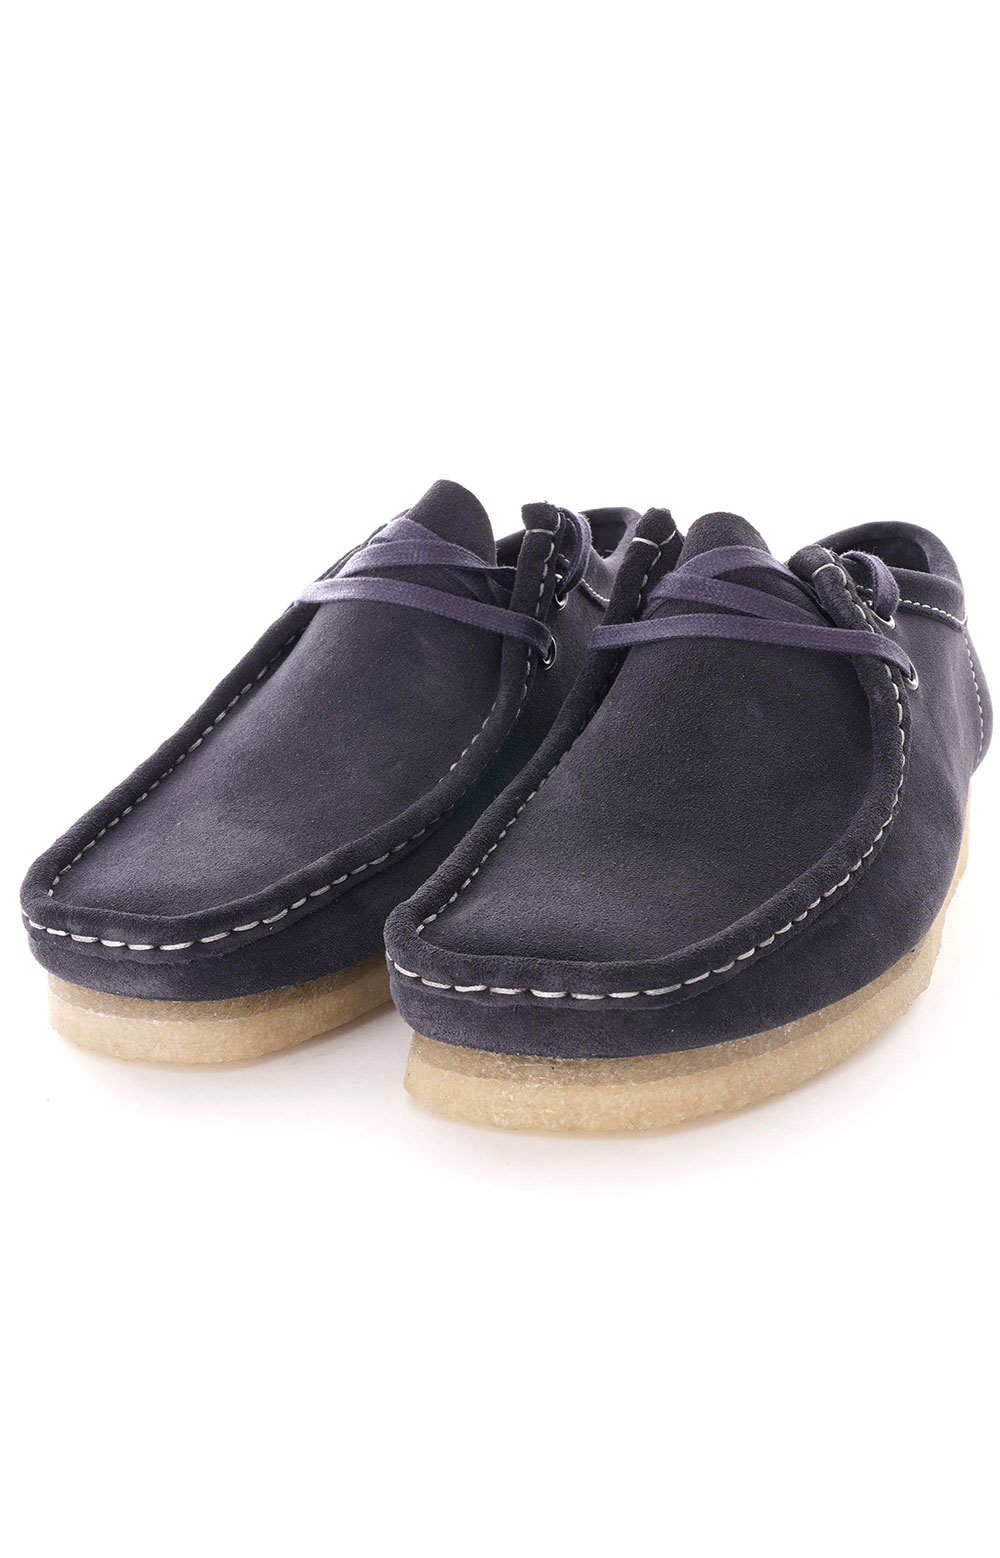 (26154744) Wallabee Shoes - Ink Suede 3